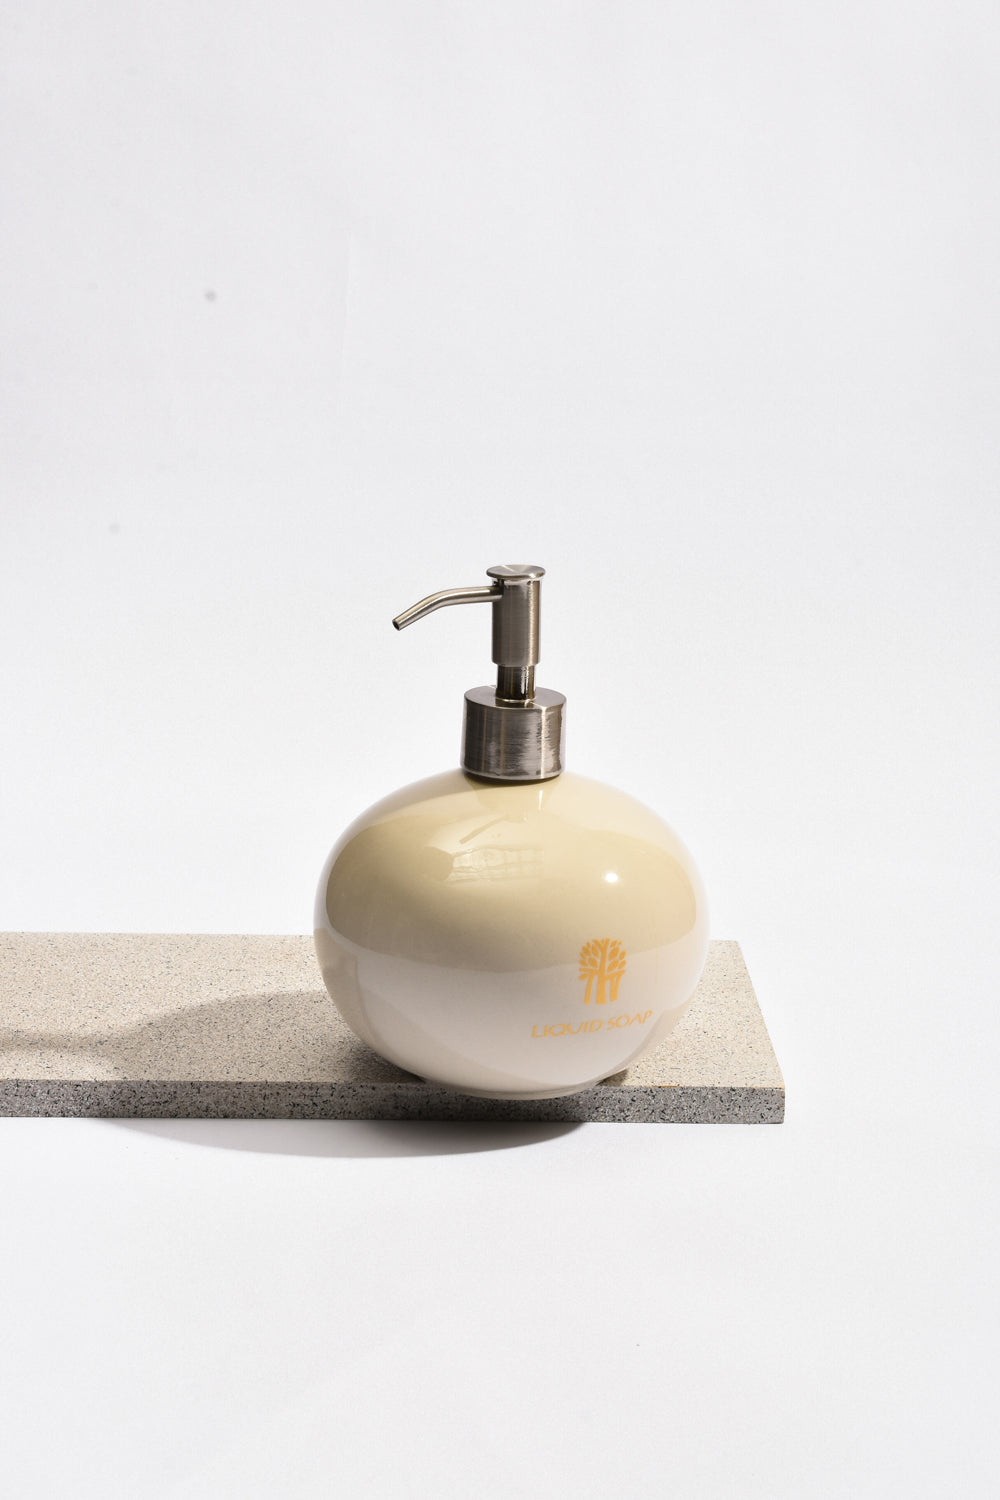 Banyan Tree Ceramic Liquid Soap Dispenser in Ivory - Banyan Tree Gallery